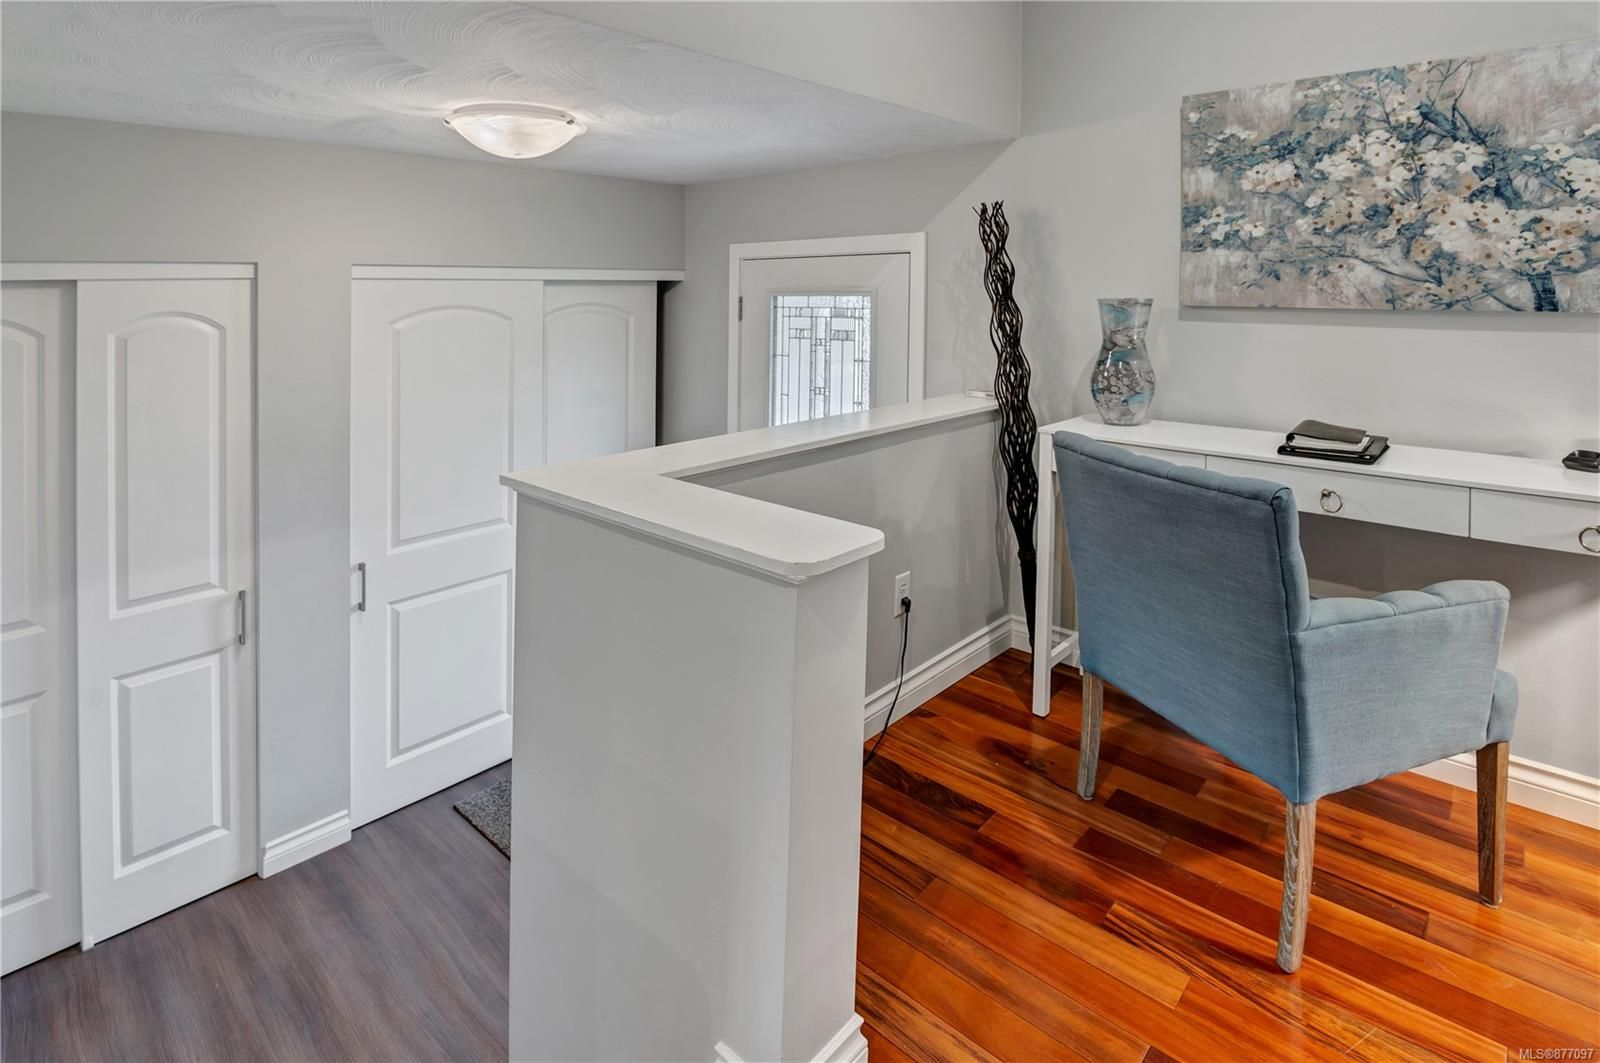 Photo 19: Photos: 2876 Fairmile Rd in : CR Willow Point House for sale (Campbell River)  : MLS®# 877097